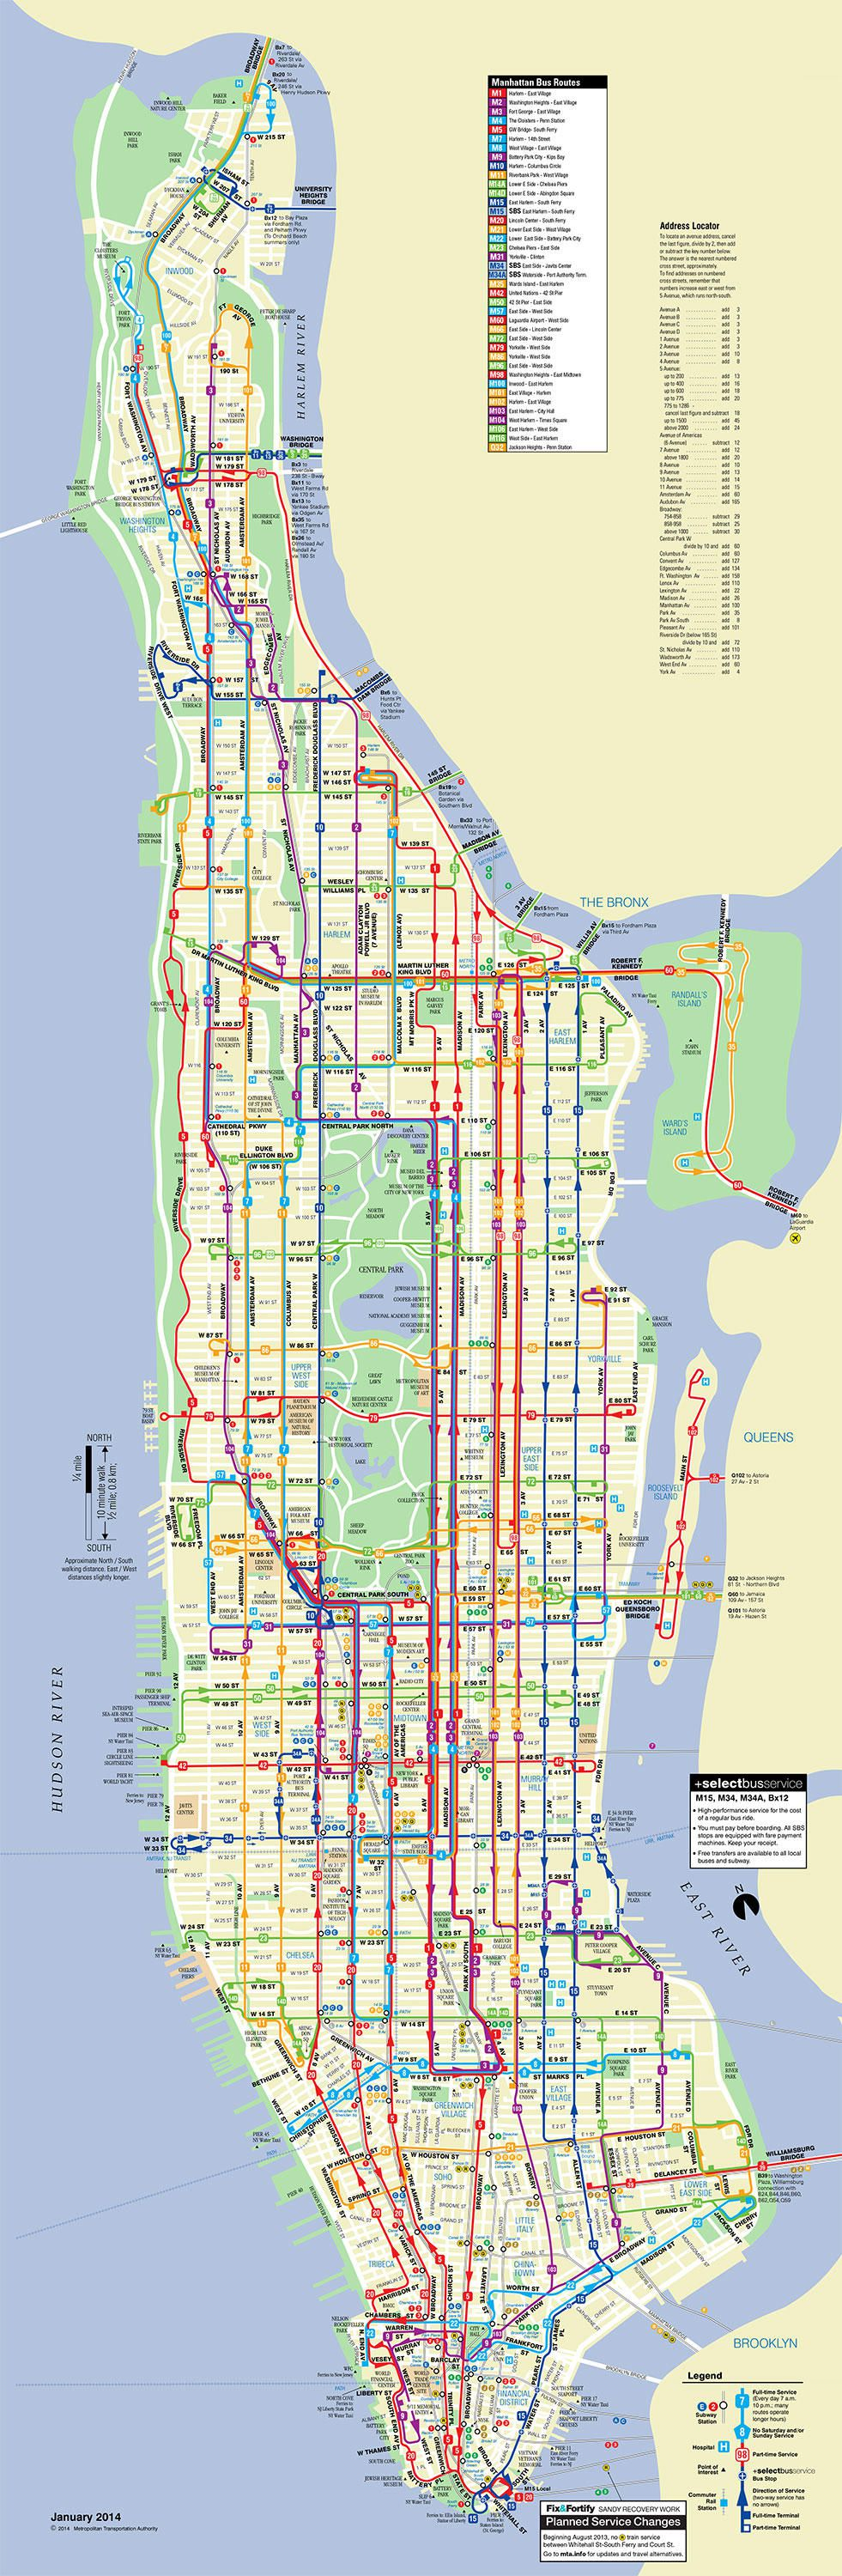 Plan du bus de Manhattan - New York